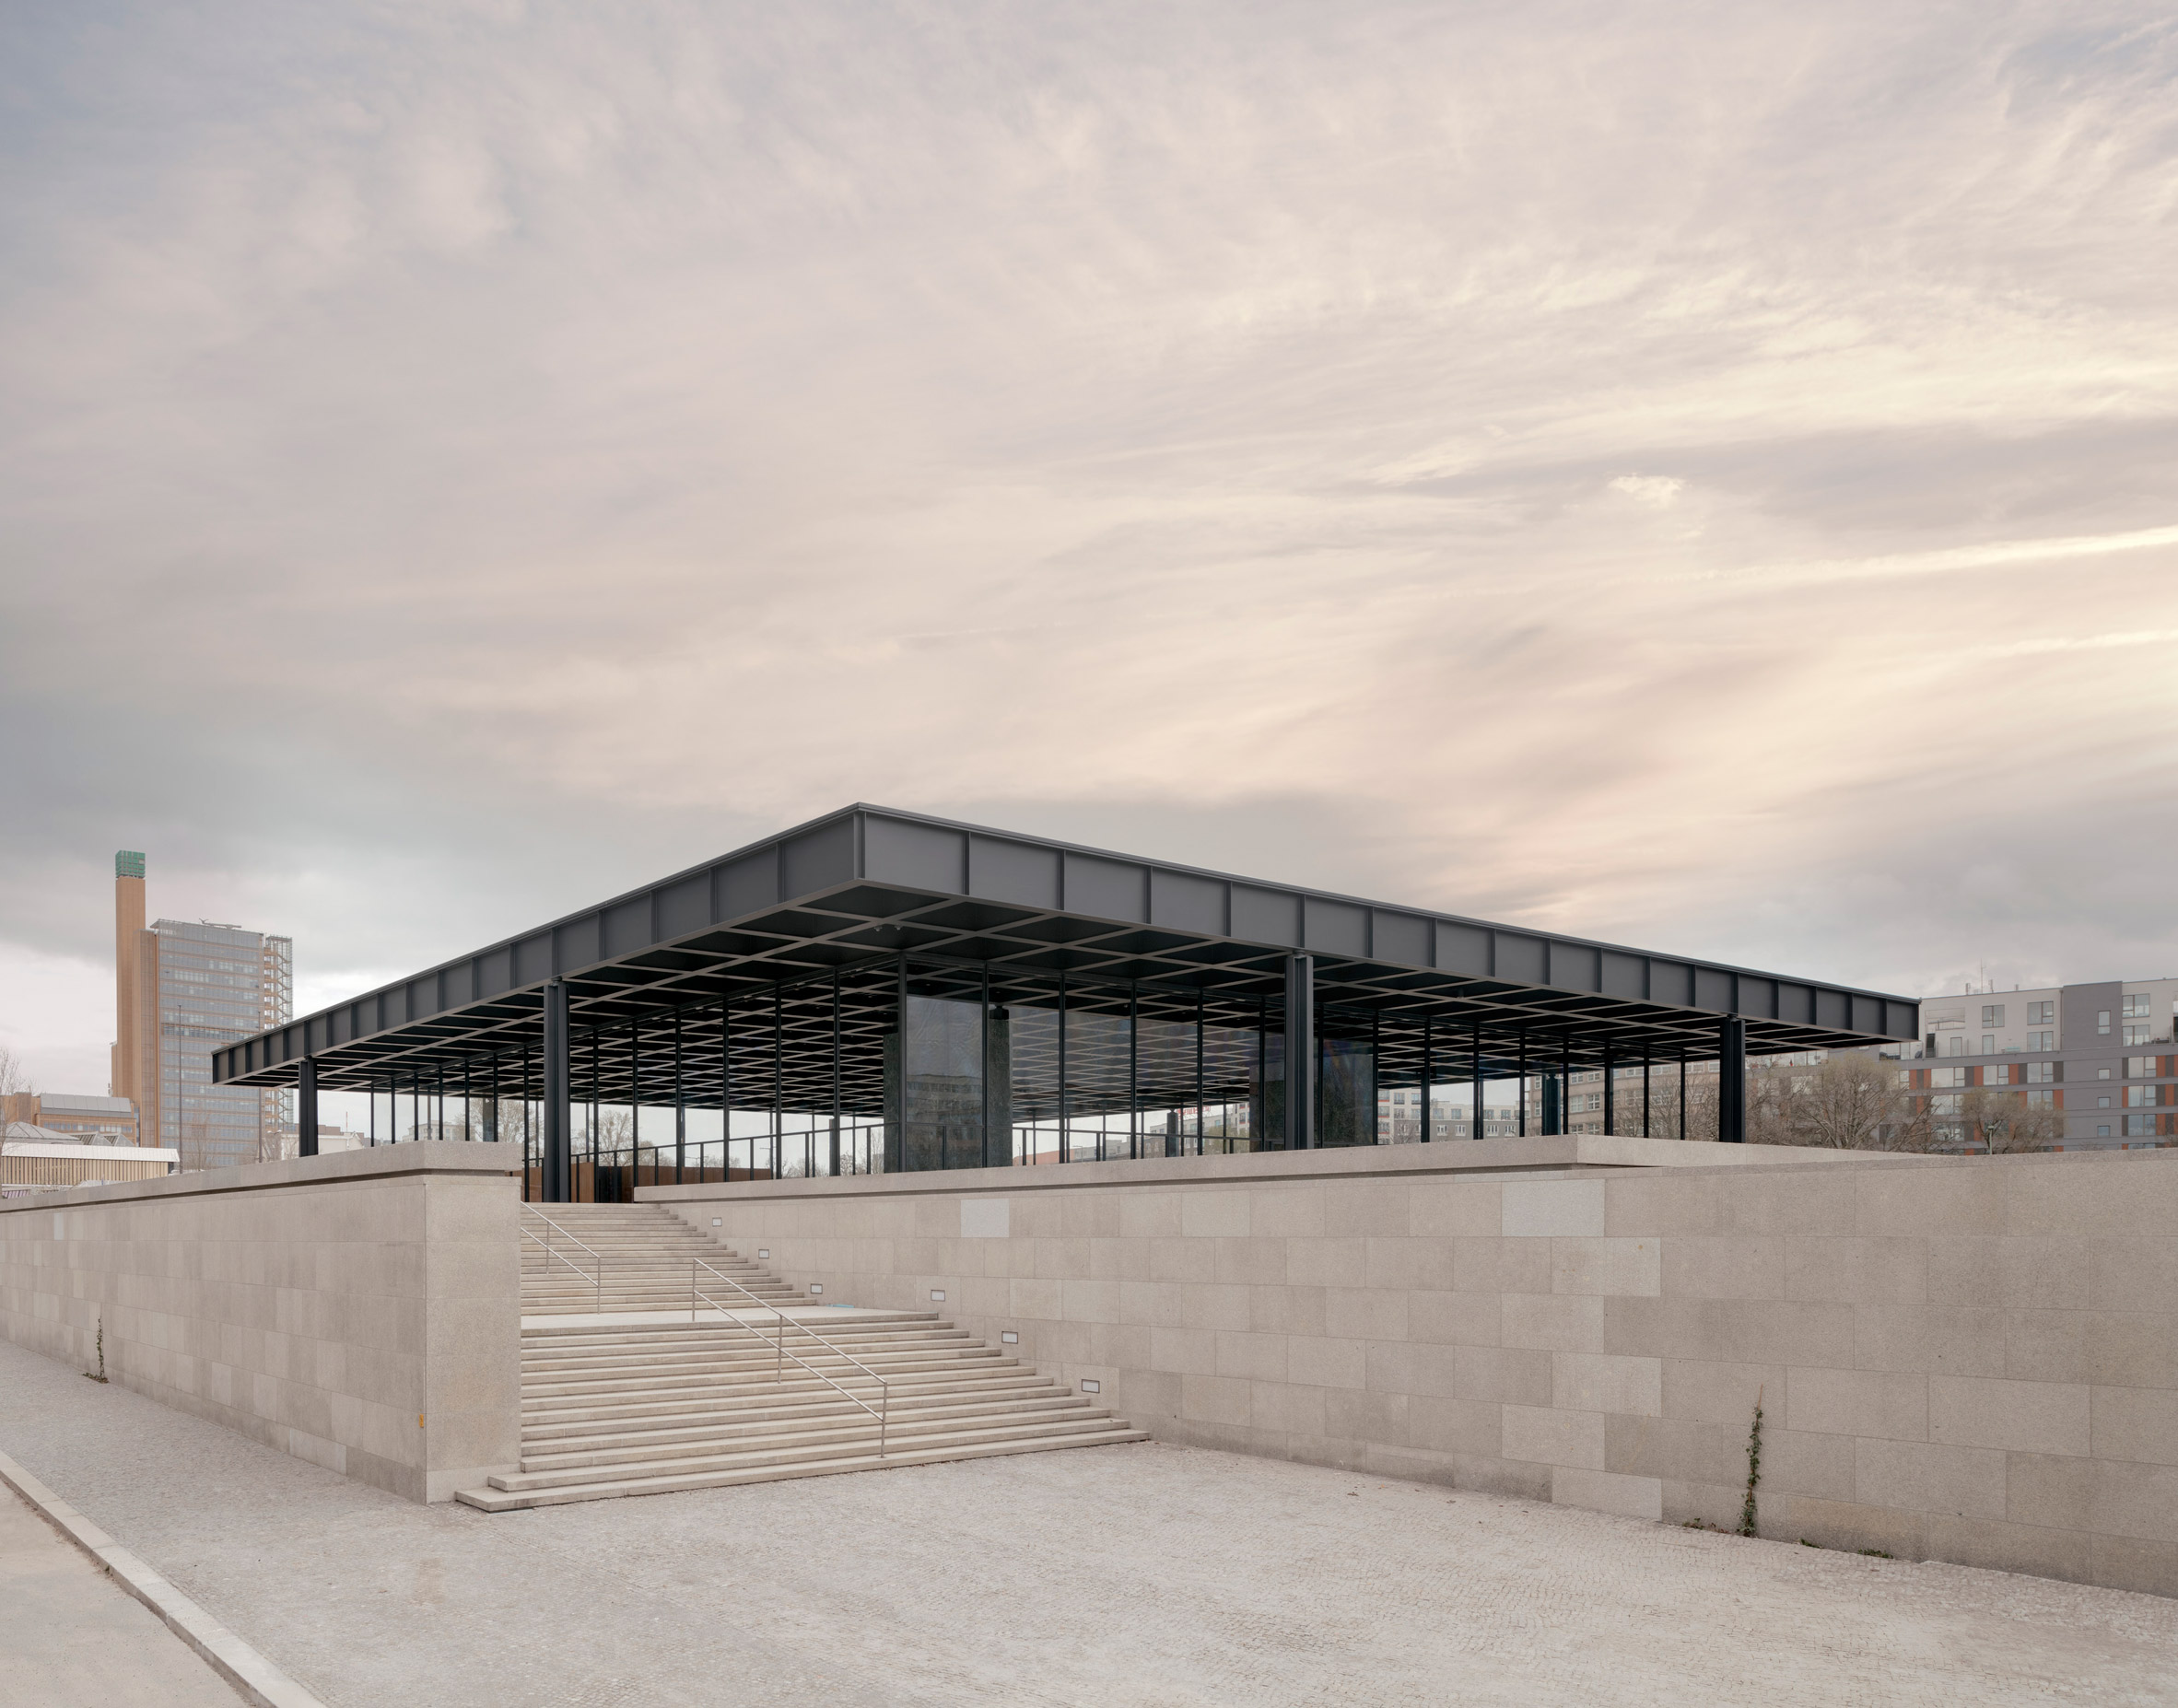 A steel and glass gallery by Mies van der Rohe